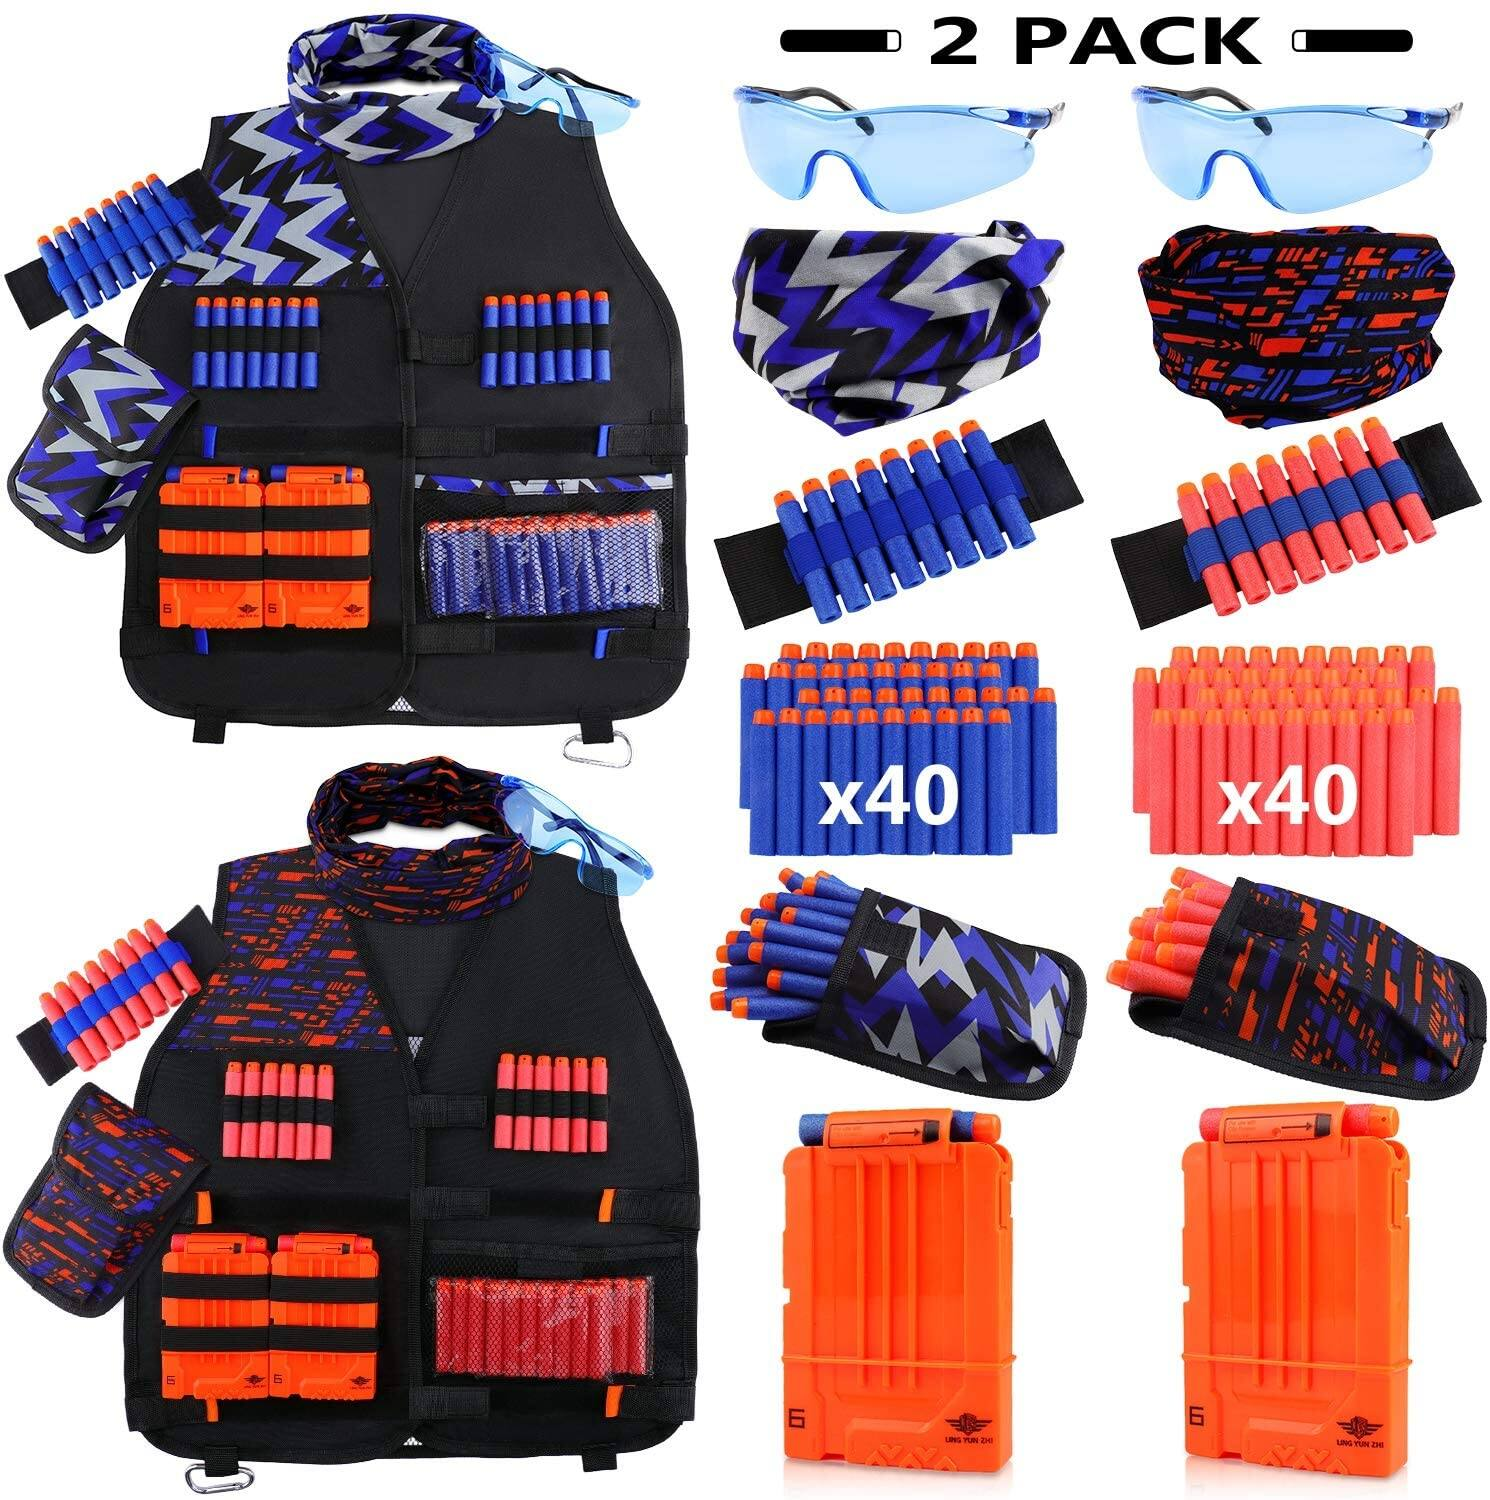 2-Pack Kids Tactical Vest Kit (Compatible with Nerf Guns N-Strike Elite Series) $17.99 + Free Shipping